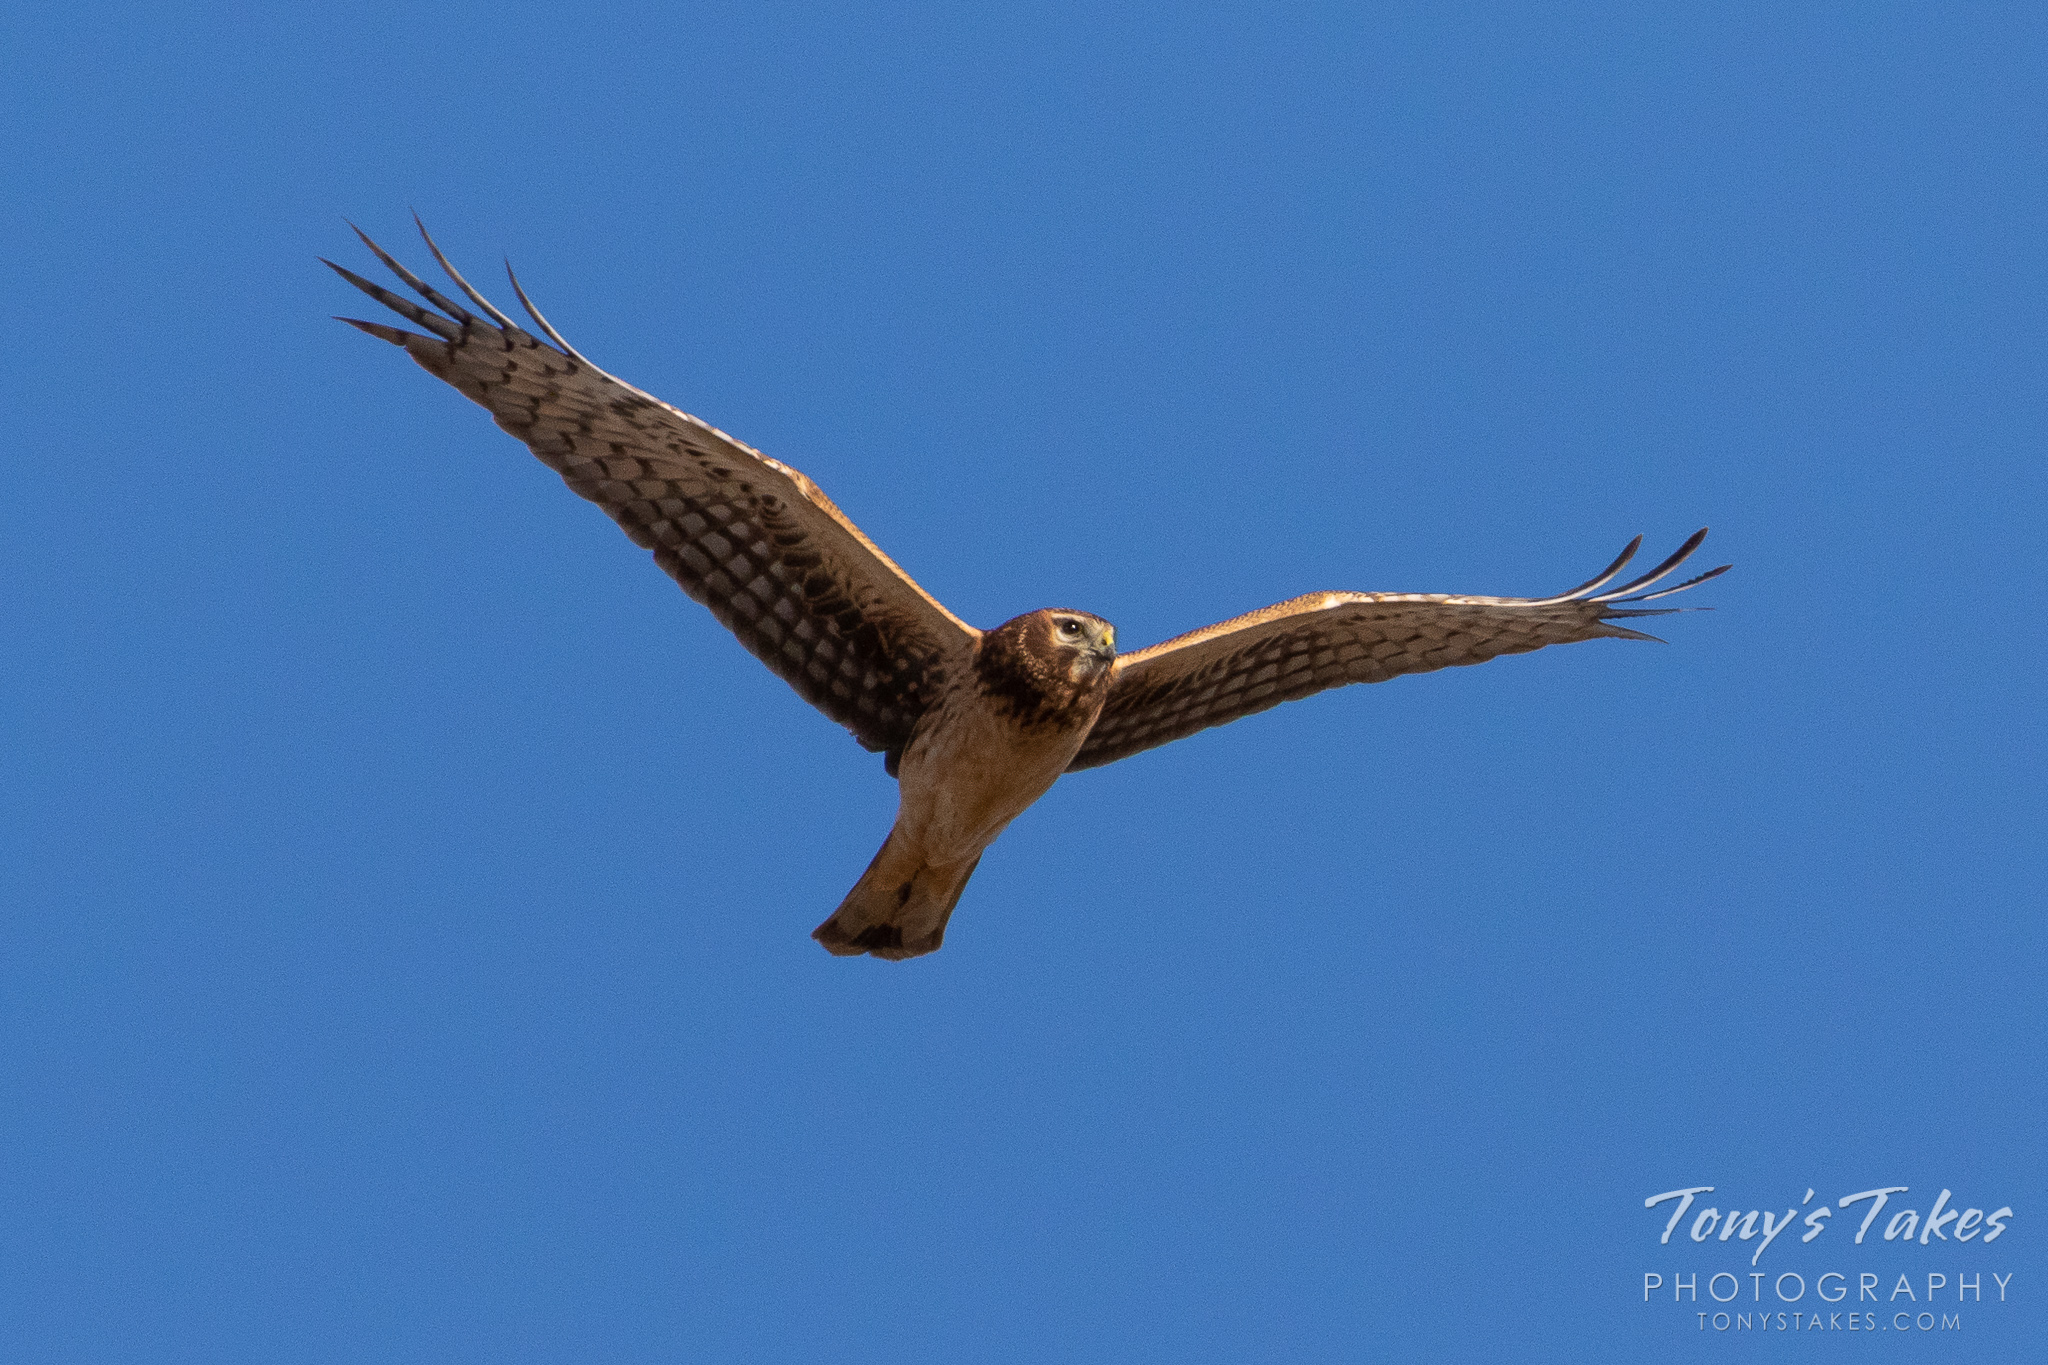 A female Northern Harrier performs a flyby in eastern Colorado. (© Tony's Takes)